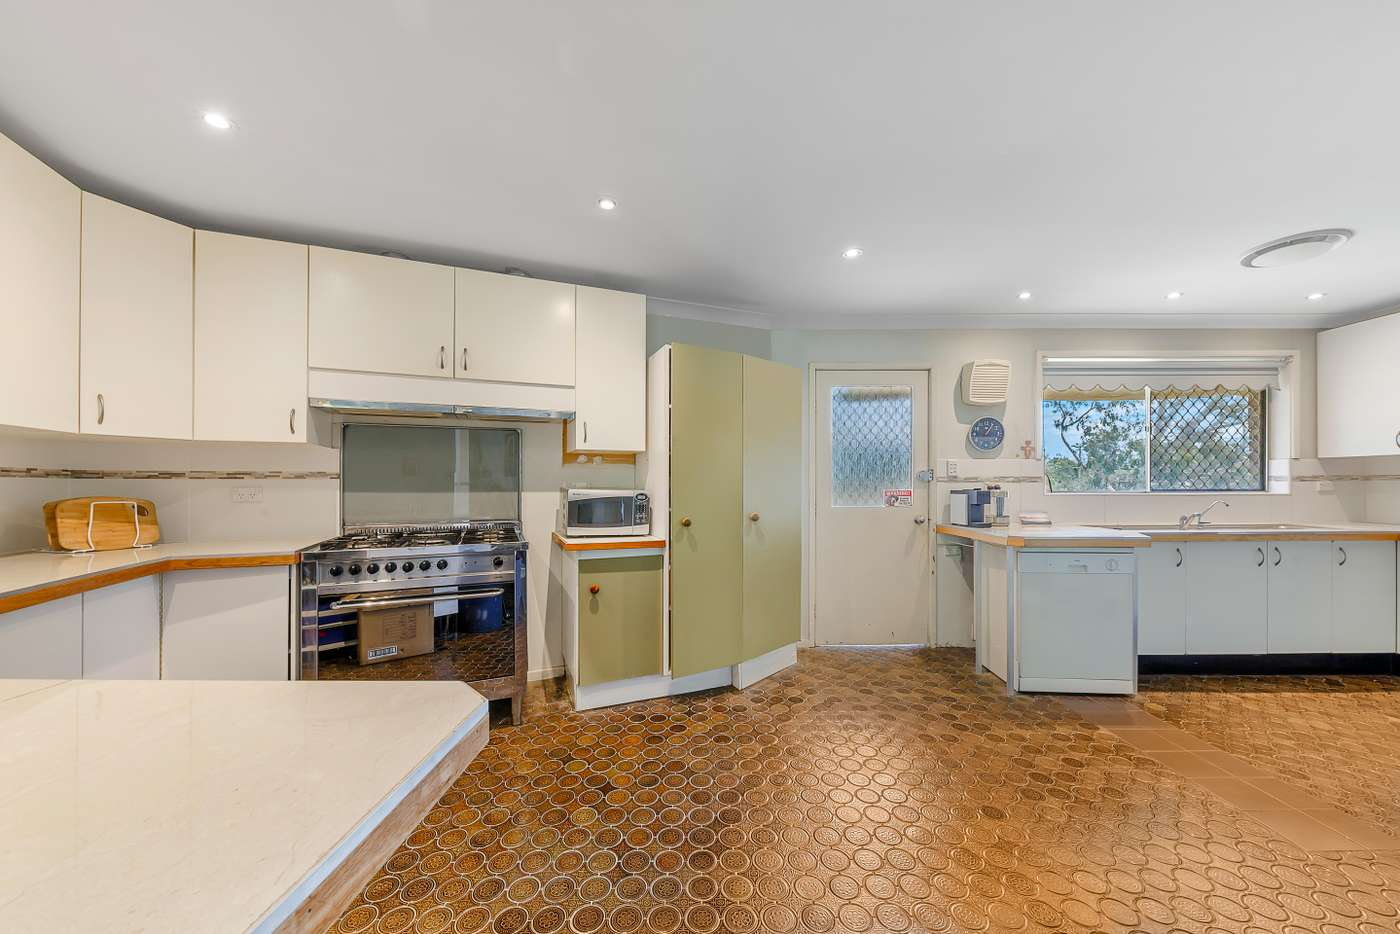 Fifth view of Homely house listing, 39 Dobson Crescent, Baulkham Hills NSW 2153